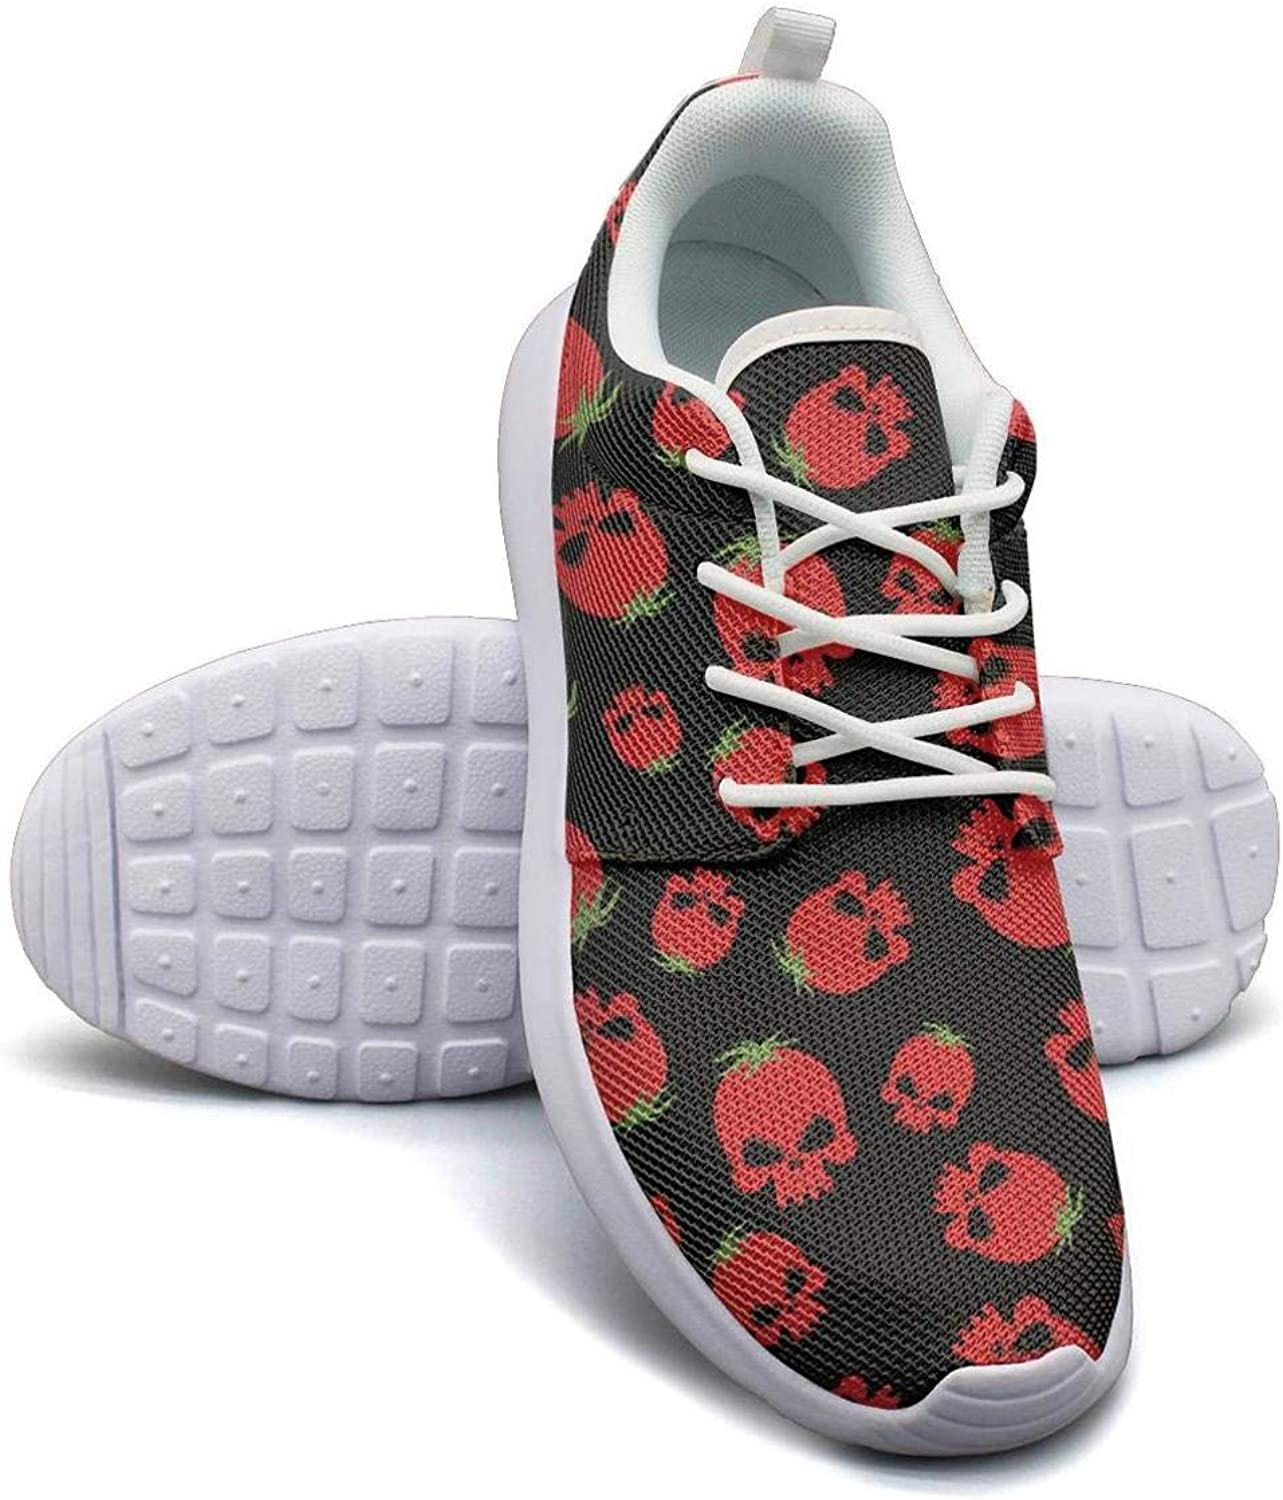 Gjsonmv Strawberry Skull Art Print mesh Lightweight shoes Women lace up Sports Basketball Sneakers shoes